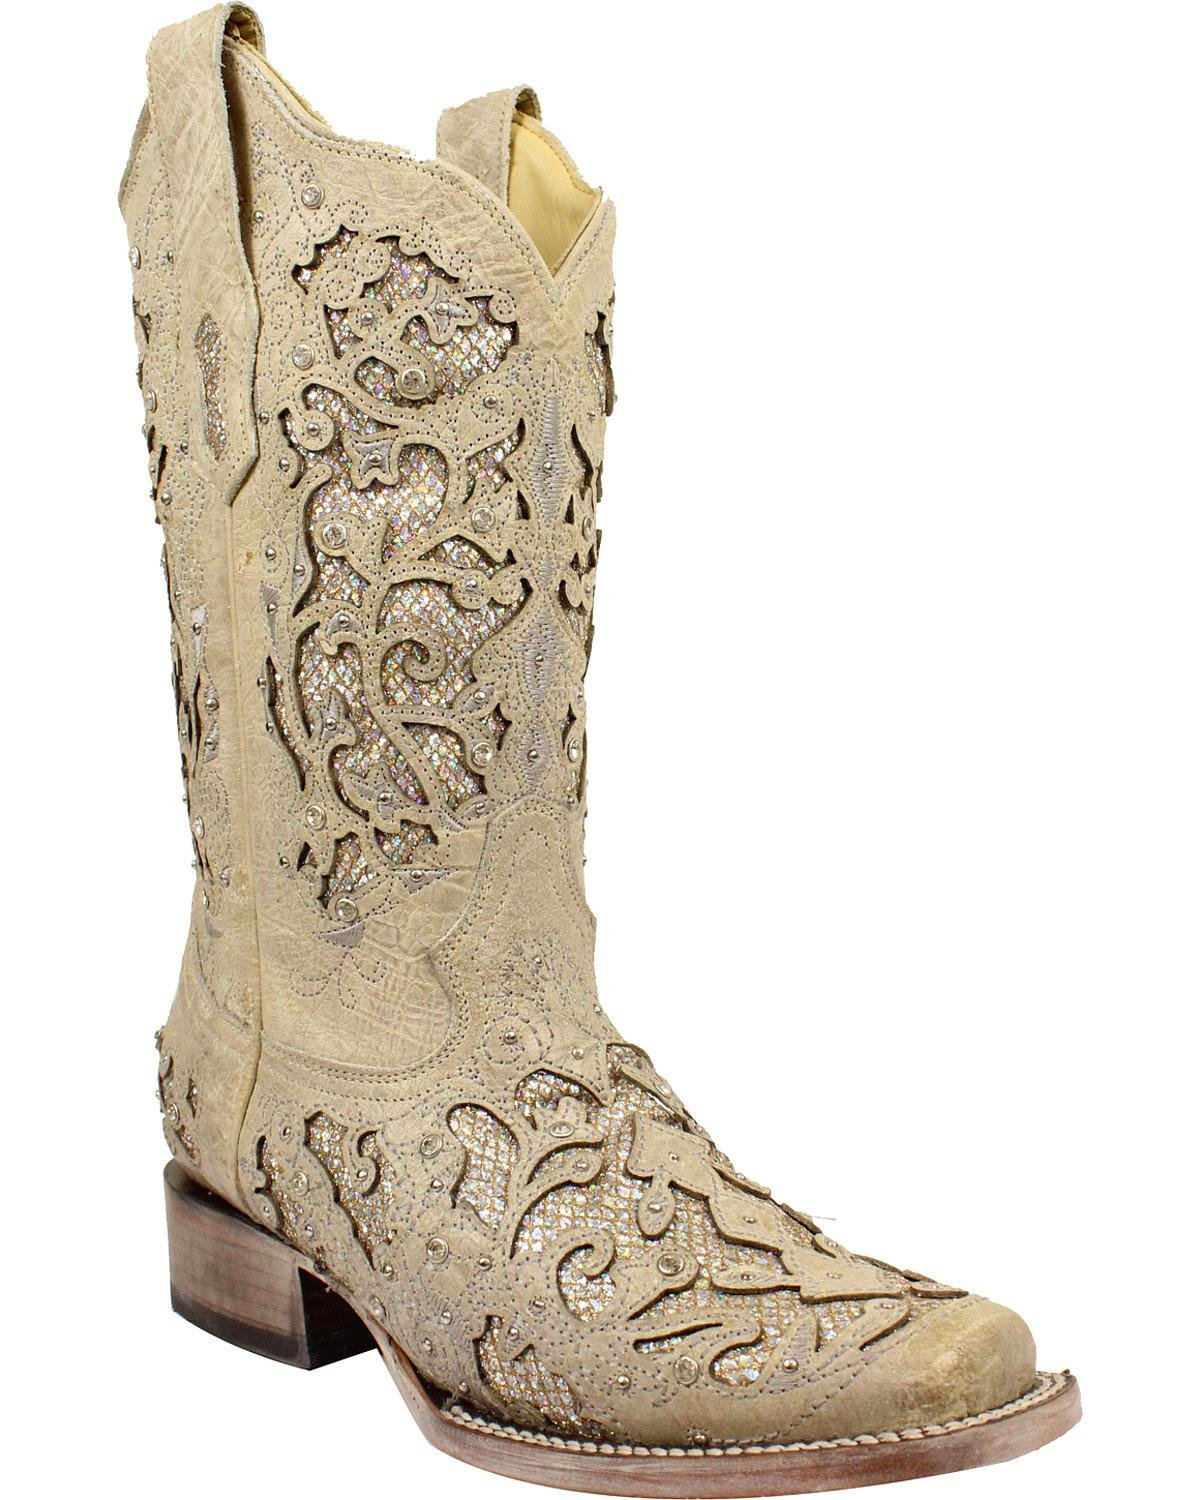 Corral Women's White Glitter and Crystals Cowgirl Boot Square Toe White 7.5 M